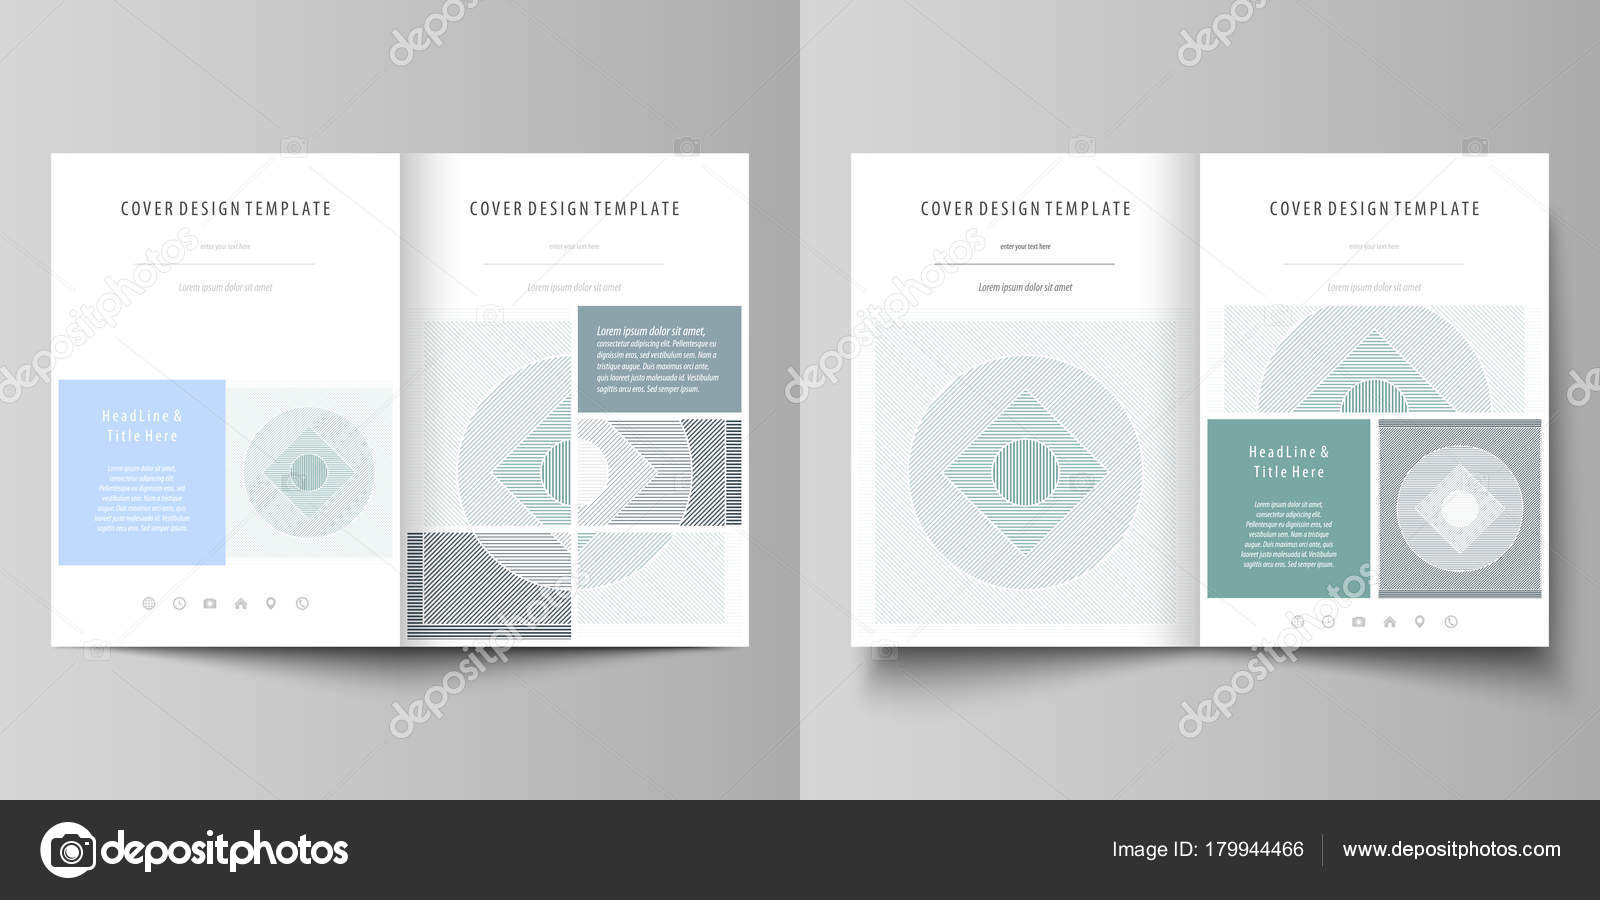 Business Templates For Bi Fold Brochure Magazine Flyer Booklet Or Annual Report Cover Design Template Easy Editable Vector Abstract Flat Layout In A4